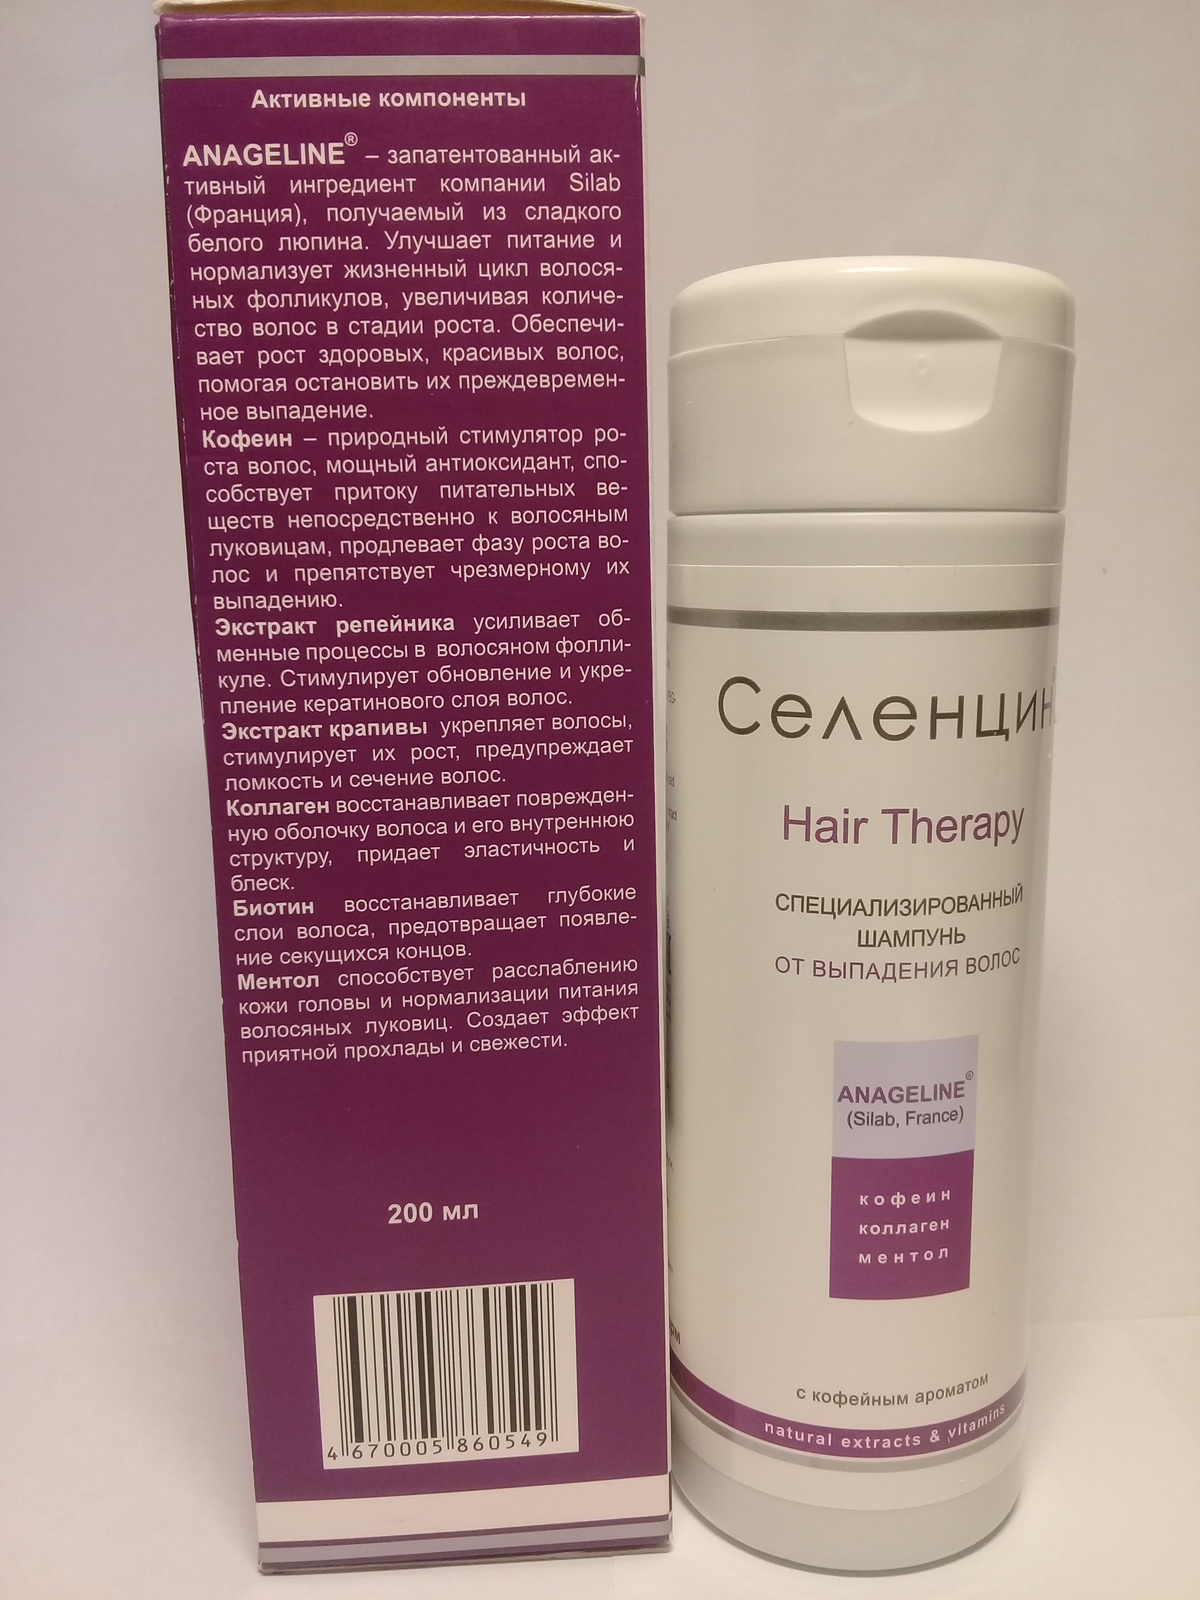 """Specialized Shampoo for Hair Loss Selencin """"Hair Therapy"""" 200 ml. image 3"""